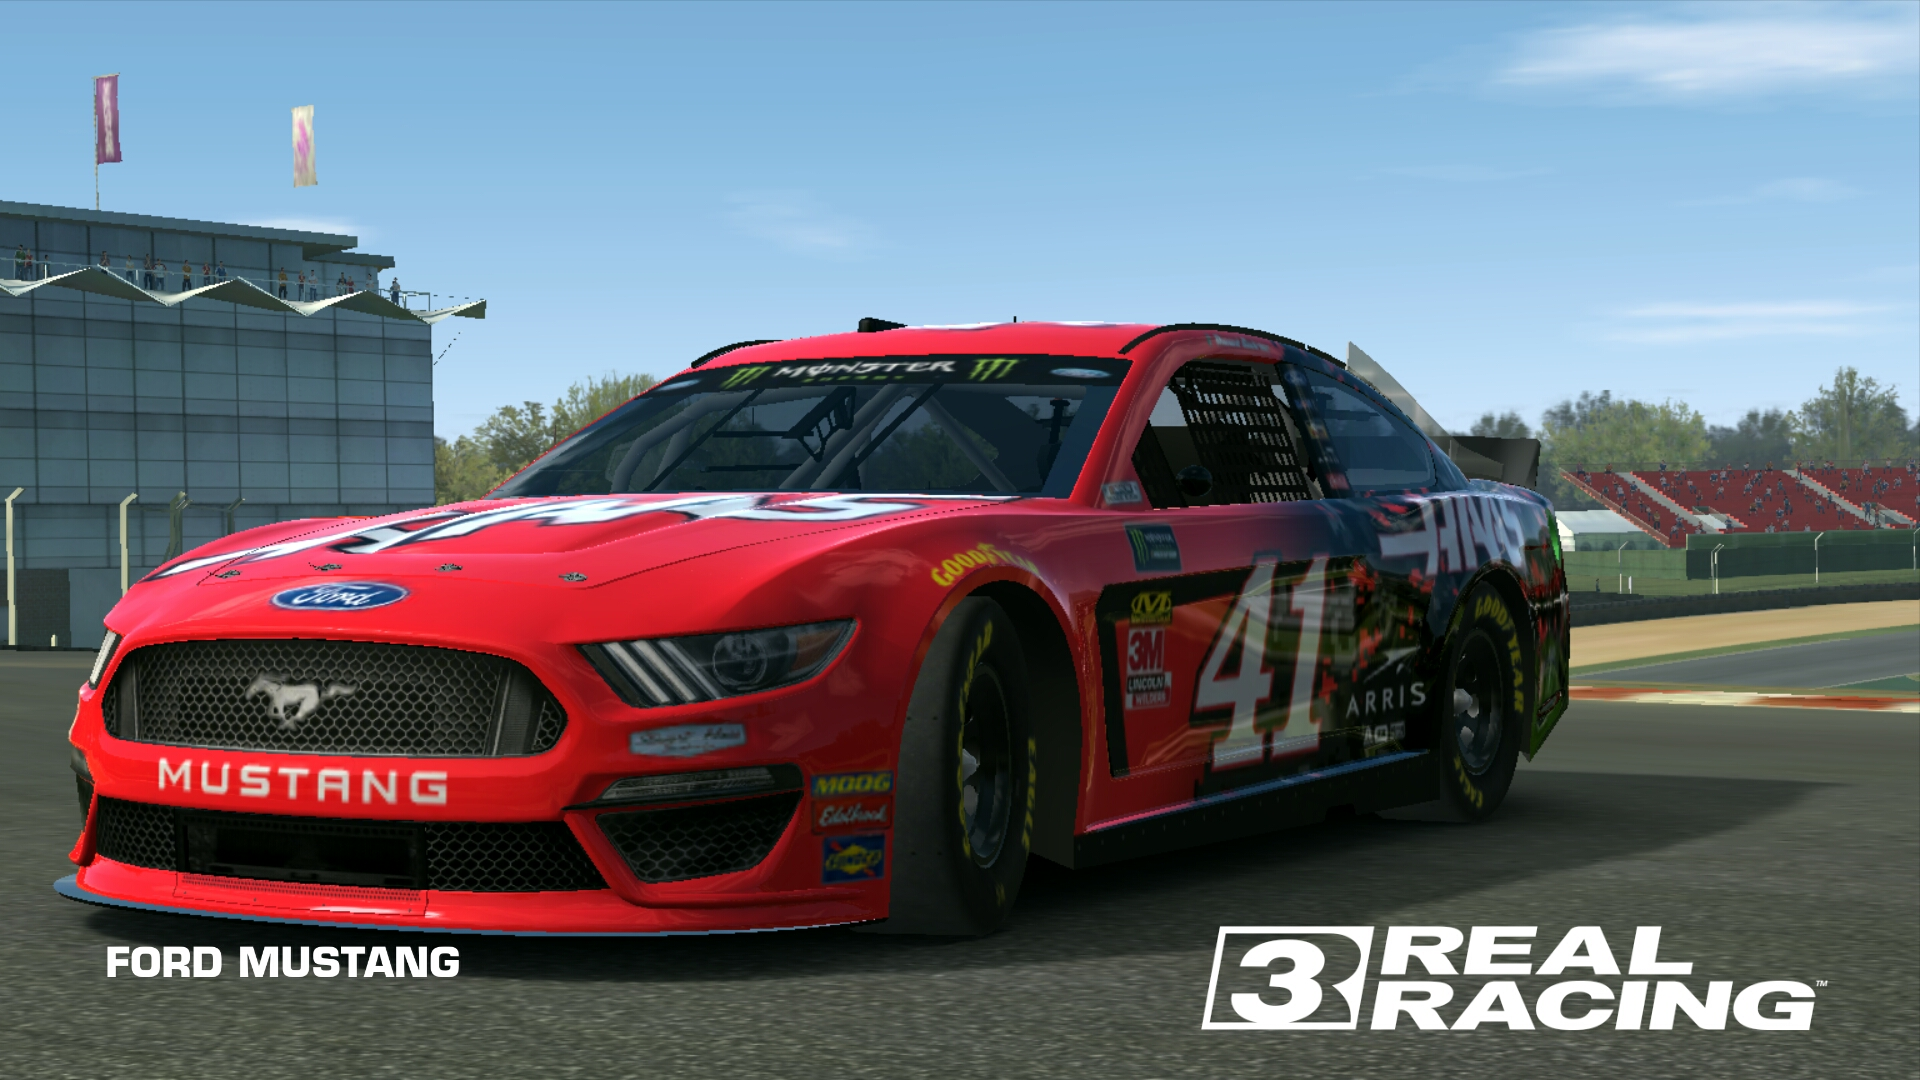 FORD MUSTANG (2019) | Real Racing 3 Wiki | FANDOM powered by